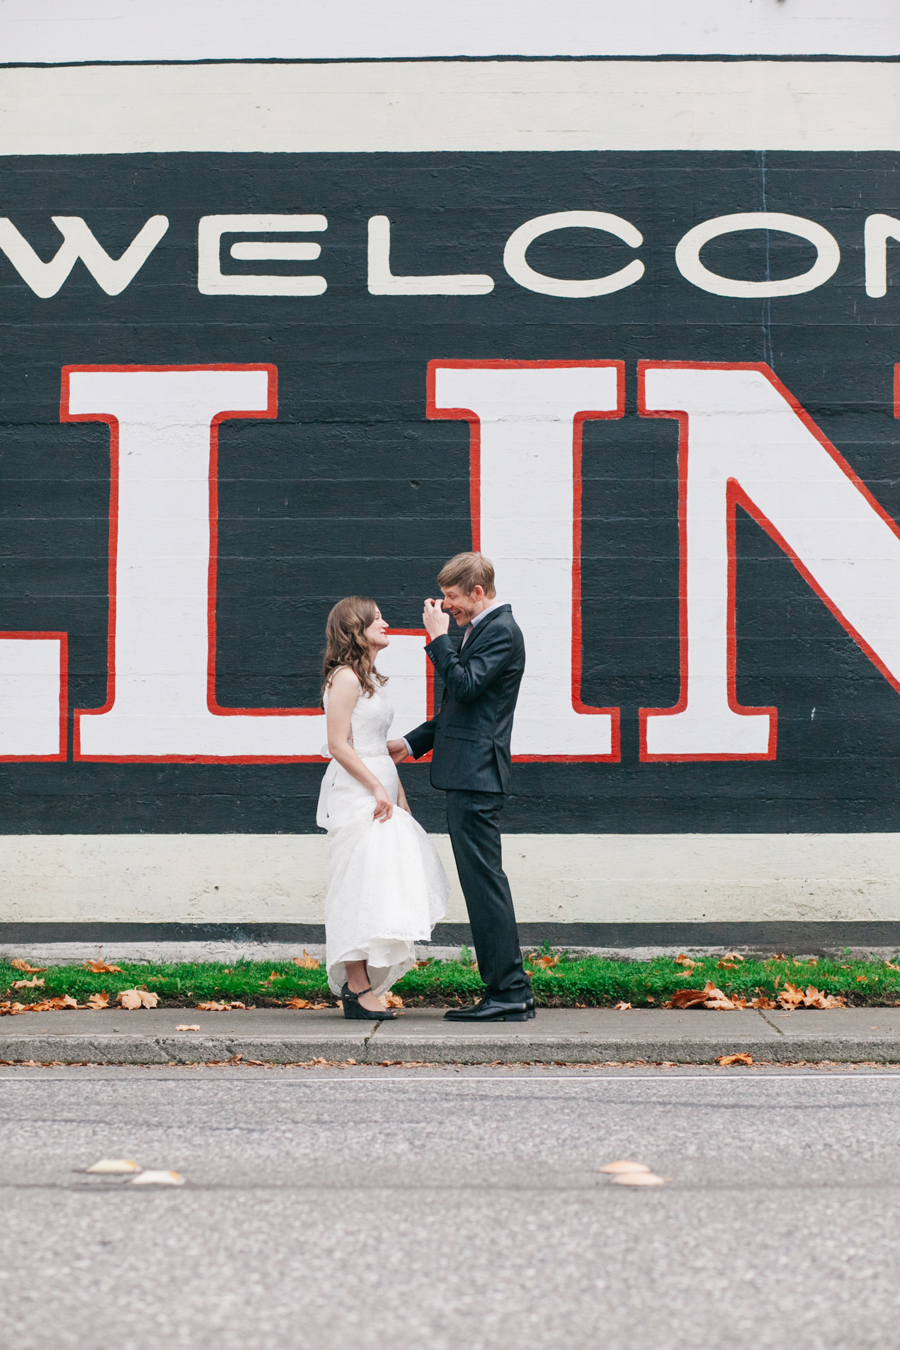 010-bellingham-fairhaven-wedding-photographer-bellingham-ferry-terminal-katheryn-moran-photography.jpg